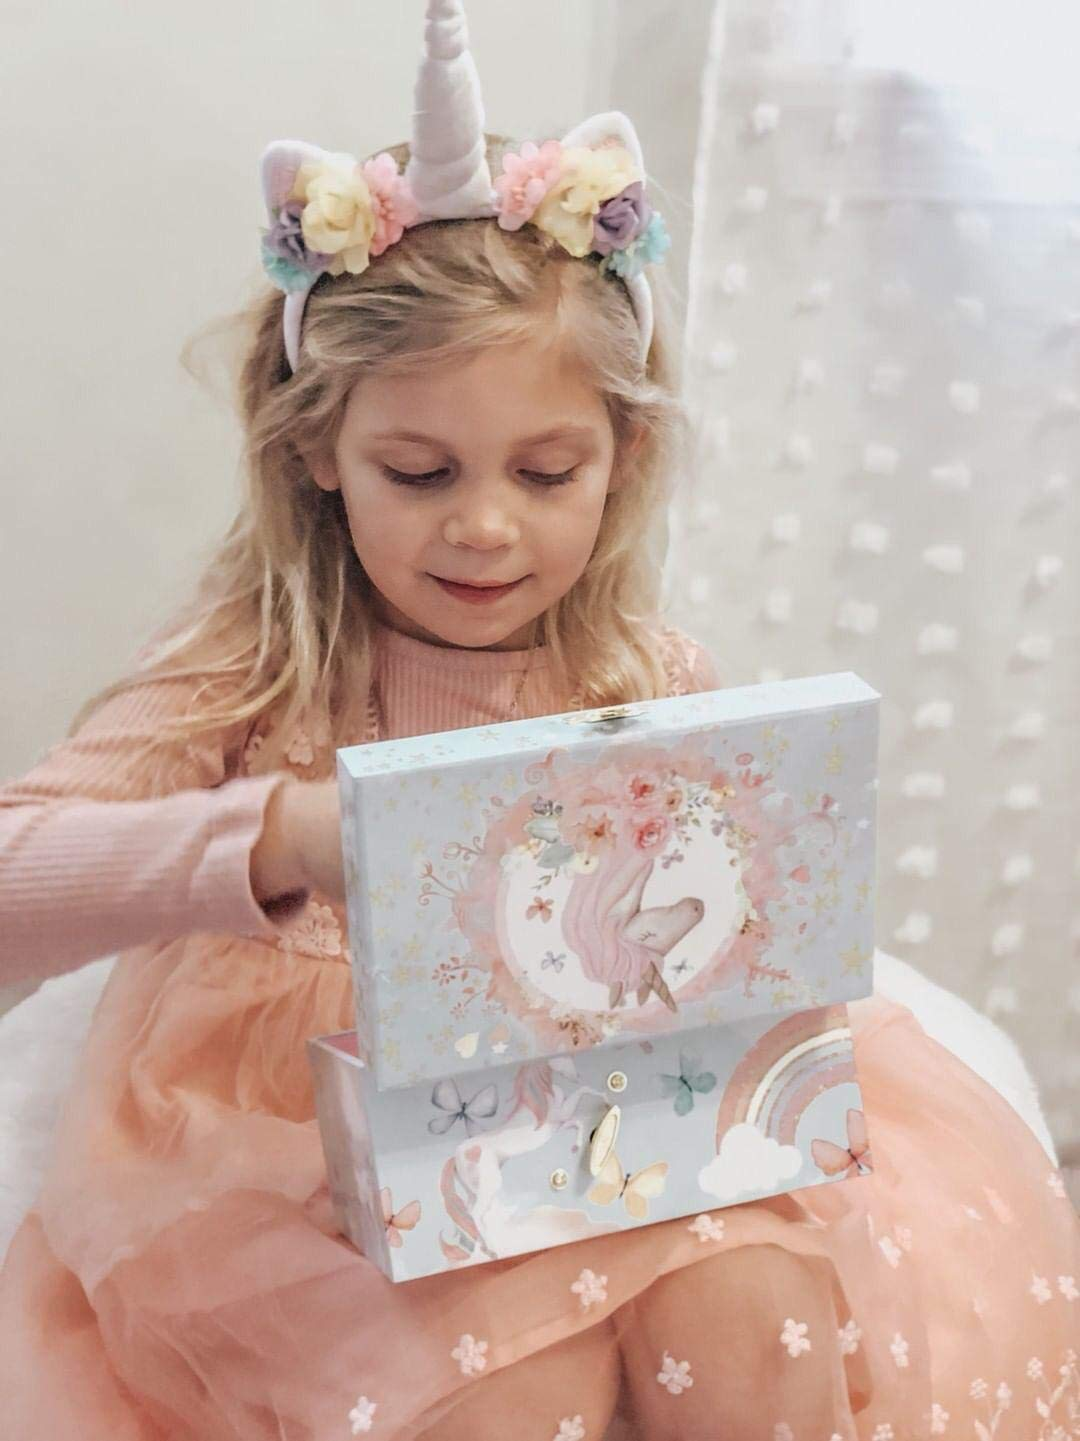 The Memory Building Company Unicorn Music Box & Little Girls Jewelry Set - 3 Unicorn Gifts for Girls 11